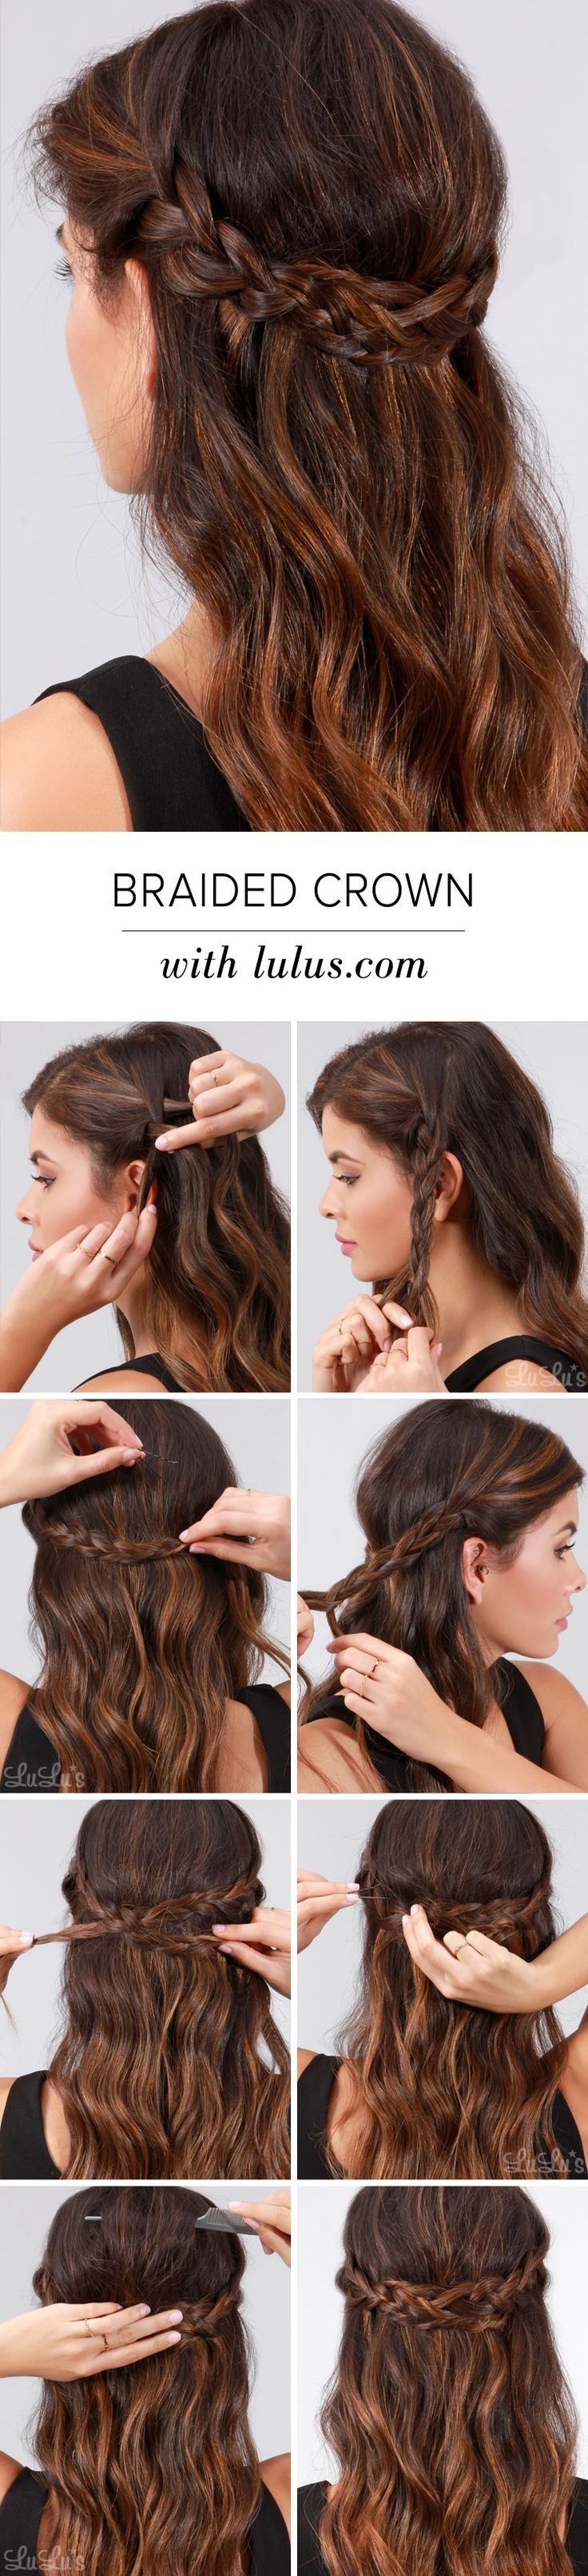 Any Most Beneficial Hairstyle Ideas Quiz